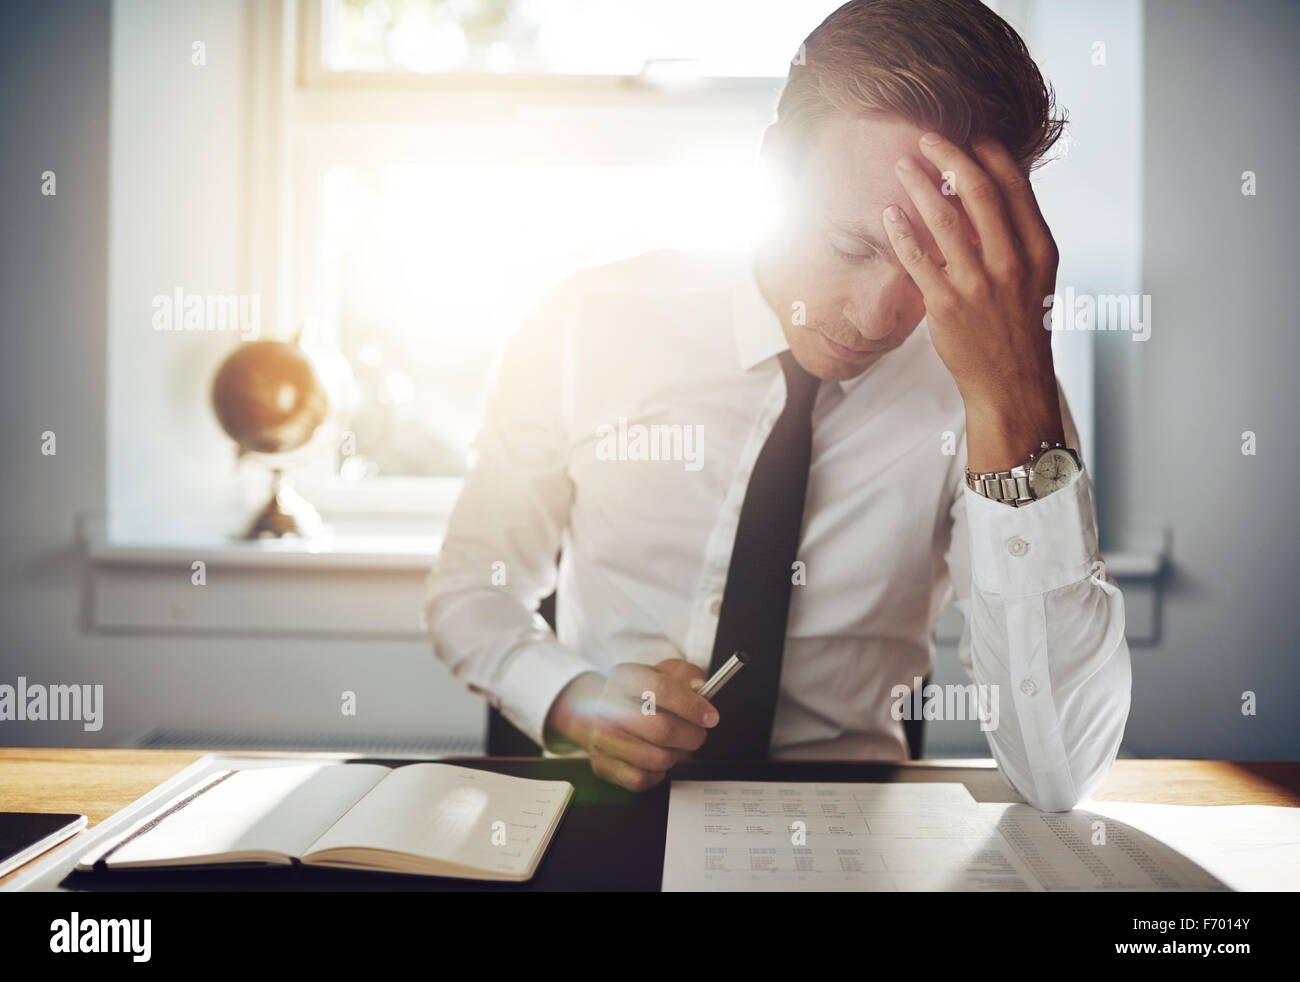 Business man working concentrated on documents looking tired holding his hand to his forehead - Stock Image